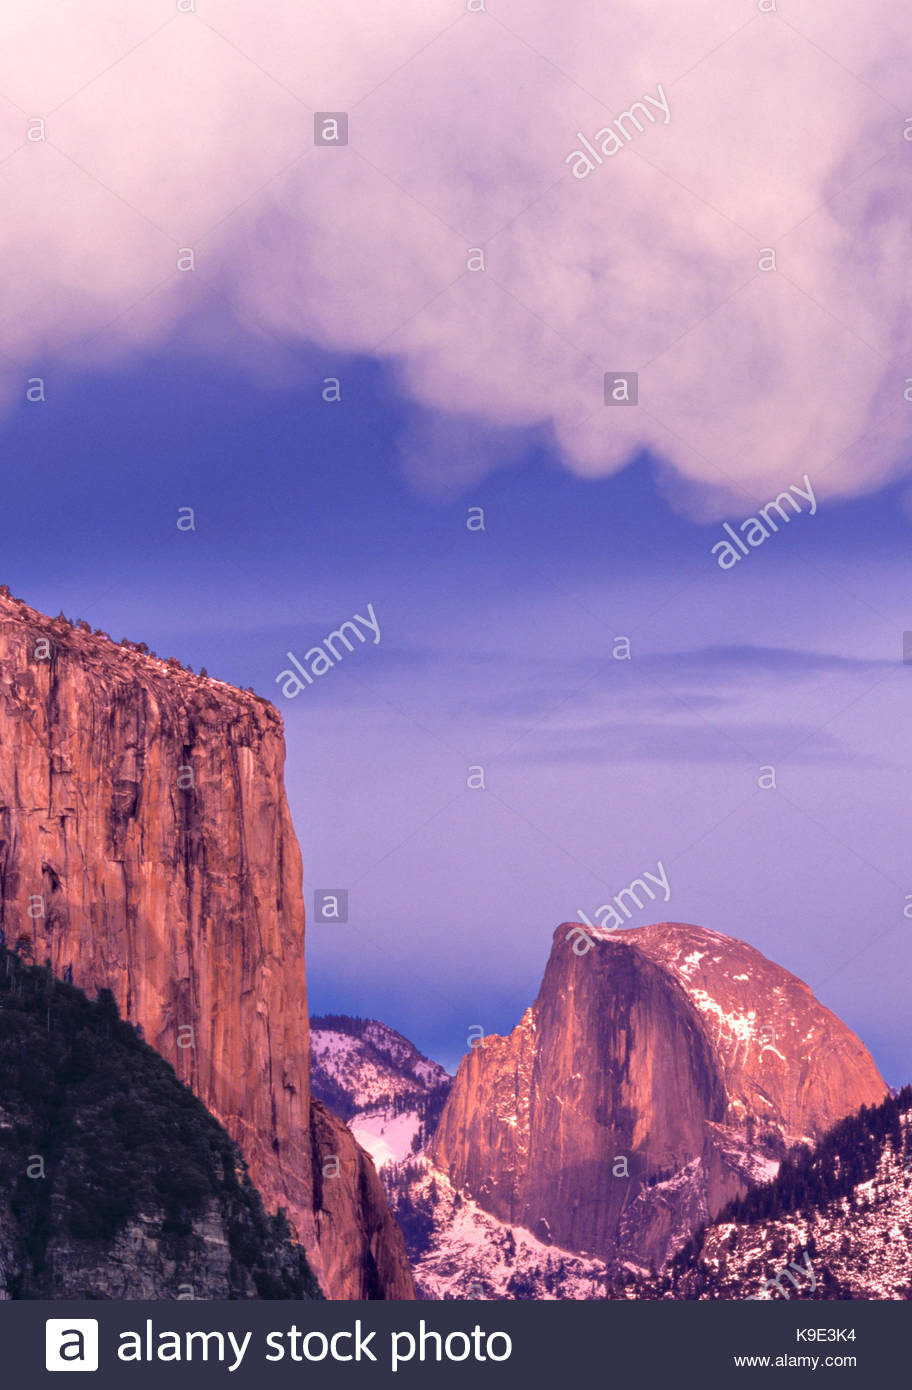 El Capitan, Half Dome and Mammatus Cloud Formation,Yosemite National Park, California - Stock Image